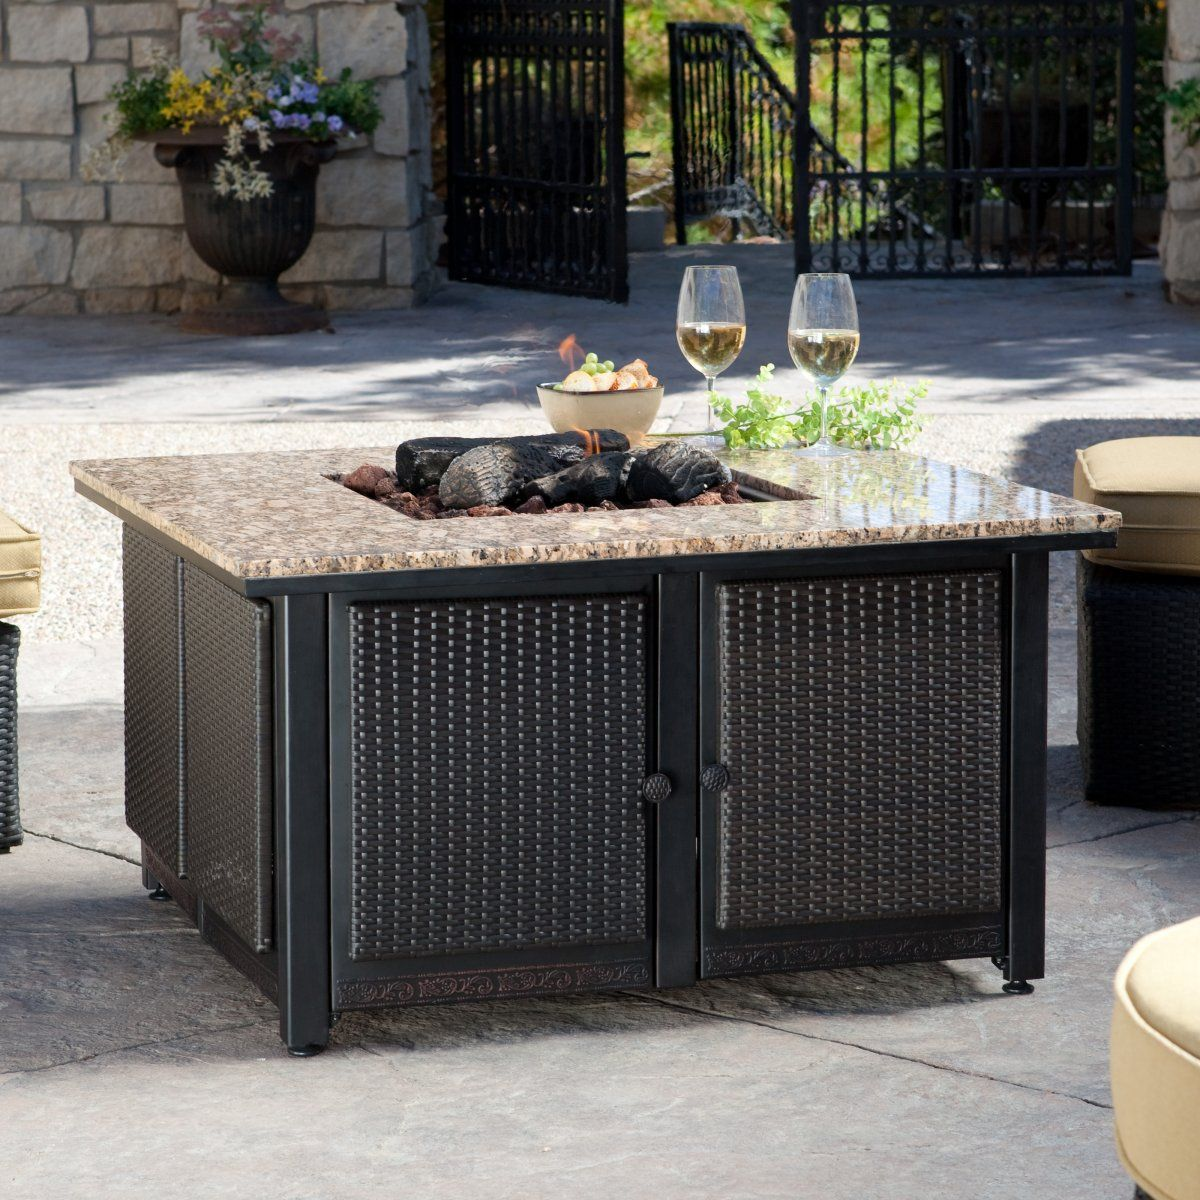 Uniflame Granite Table Propane Fire Pit Pits At Hayneedle 850